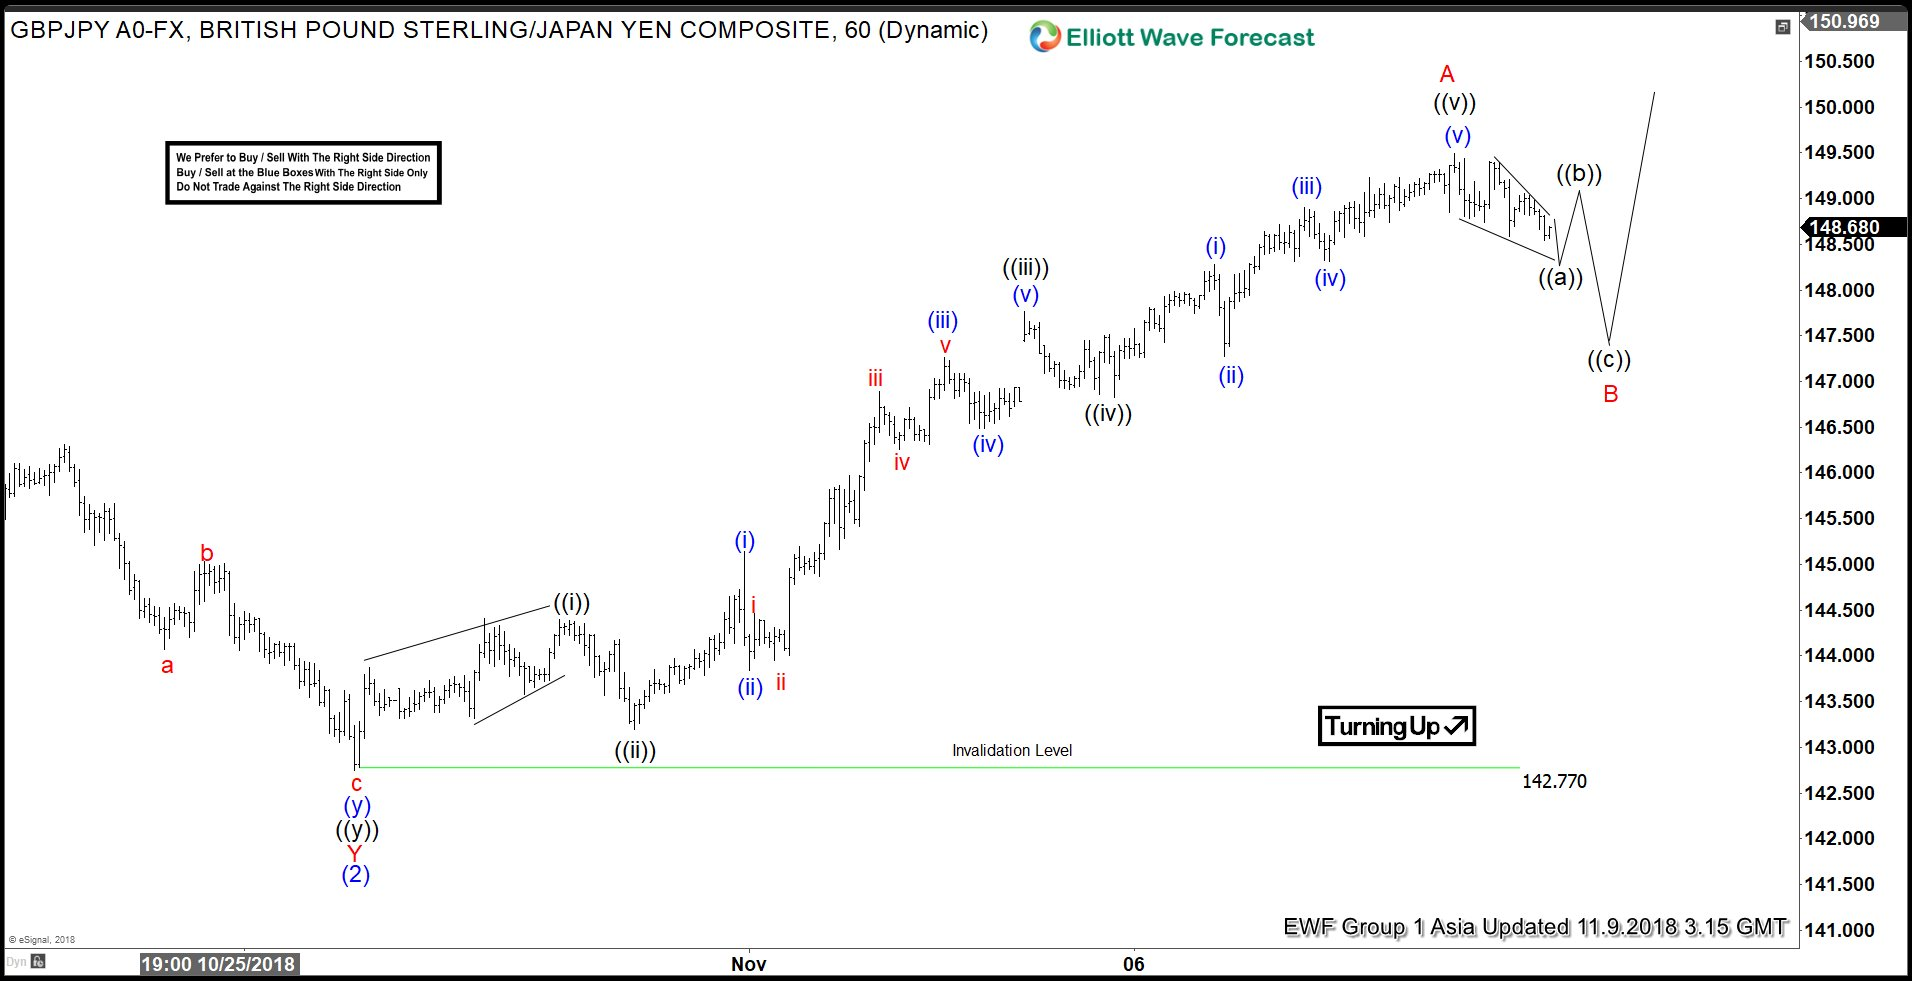 Elliott Wave Analysis: GBPJPY in Correction Before Next Leg Higher